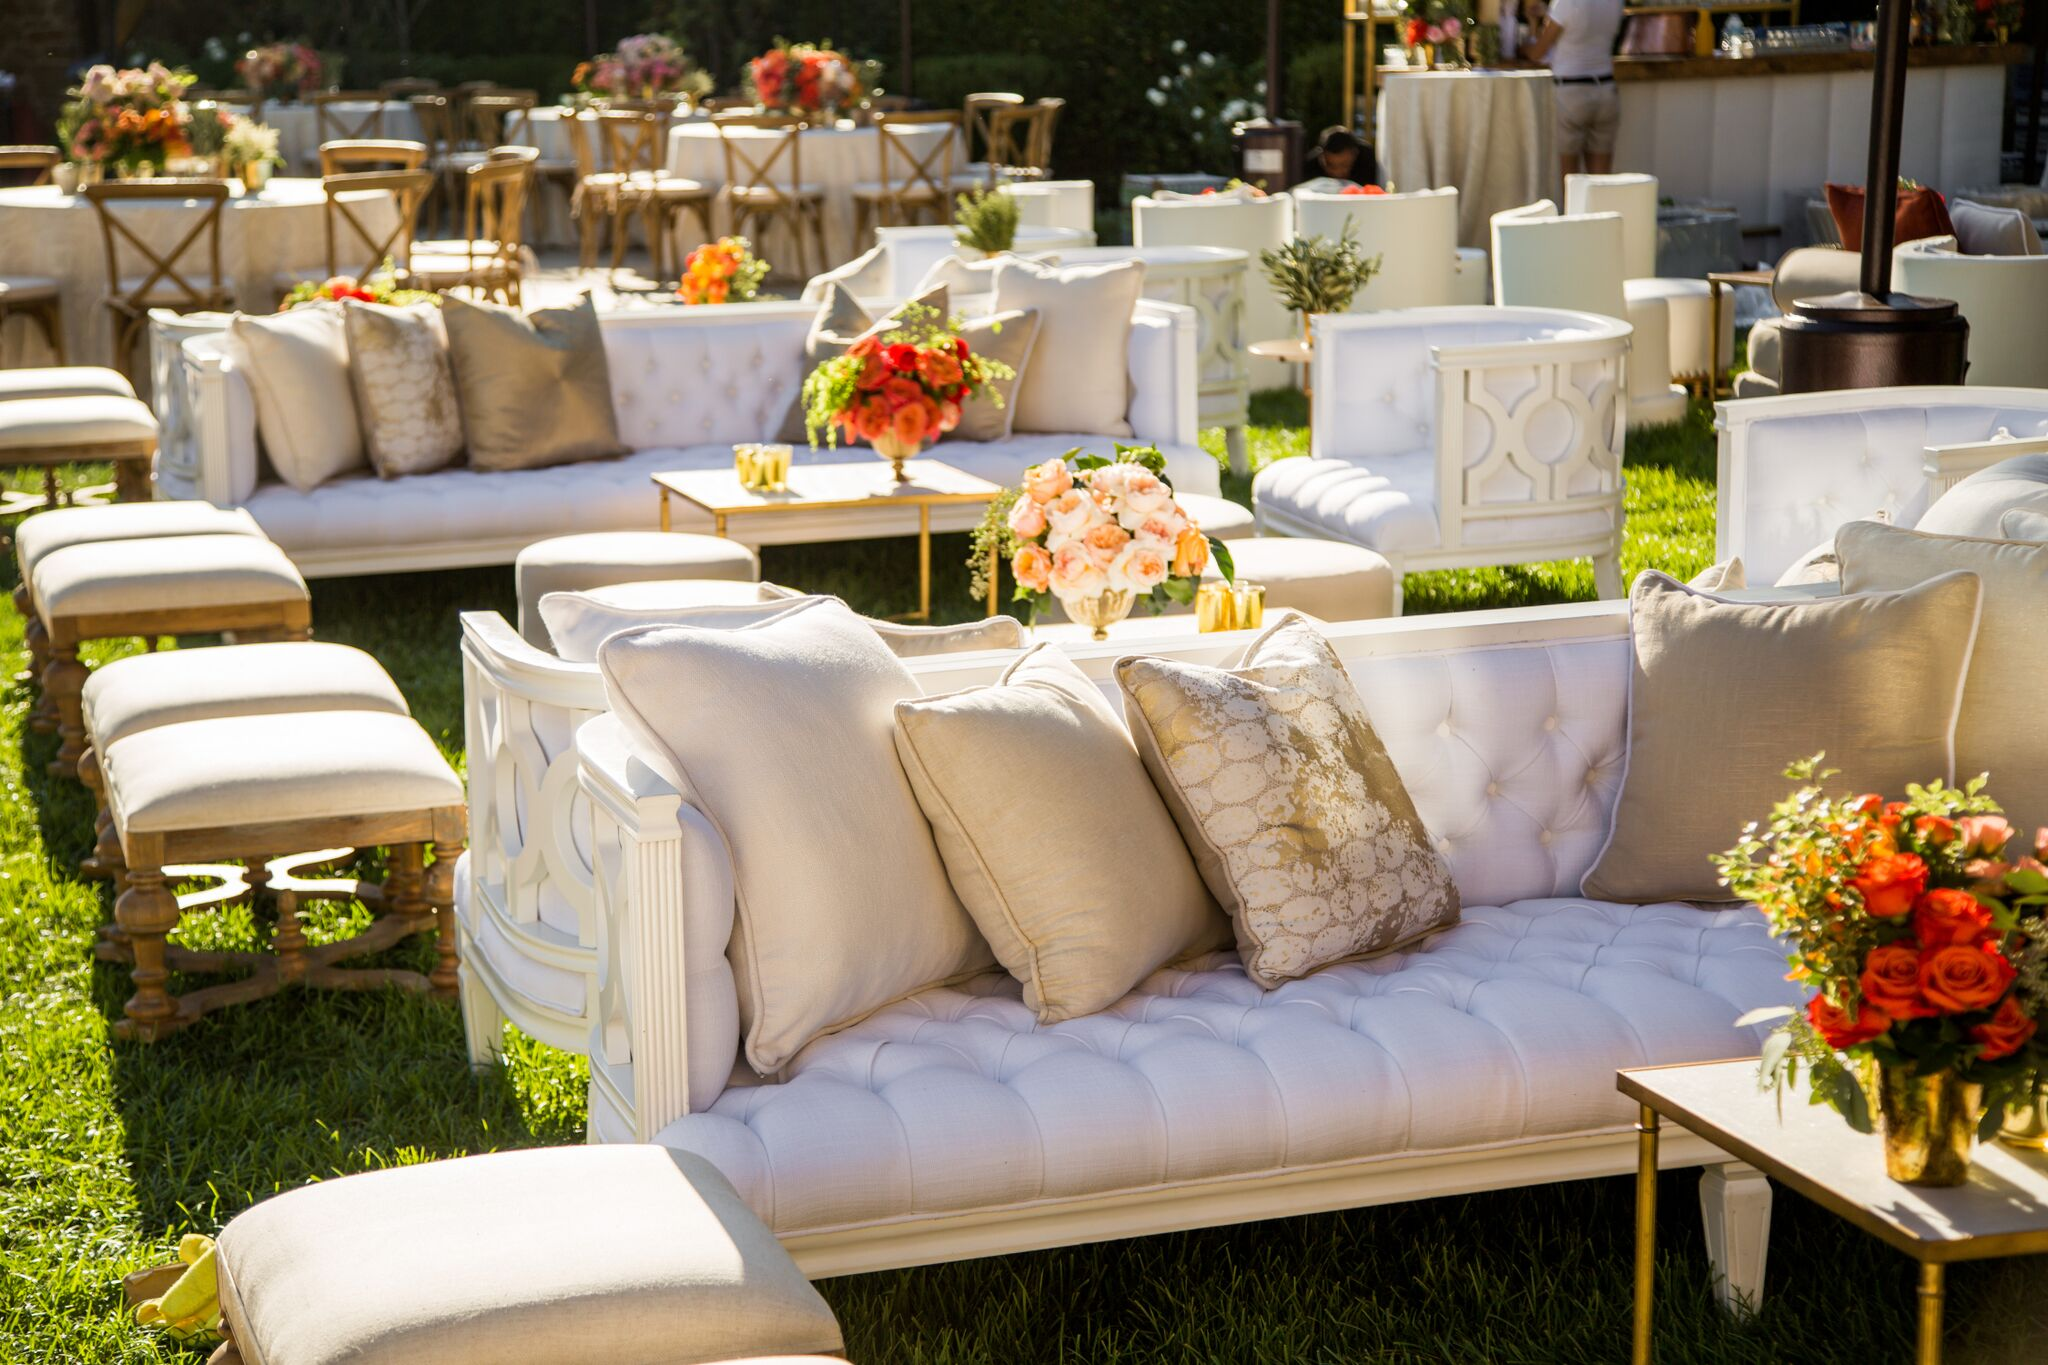 revelry event designers, levine fox, marks garden, backyard wedding